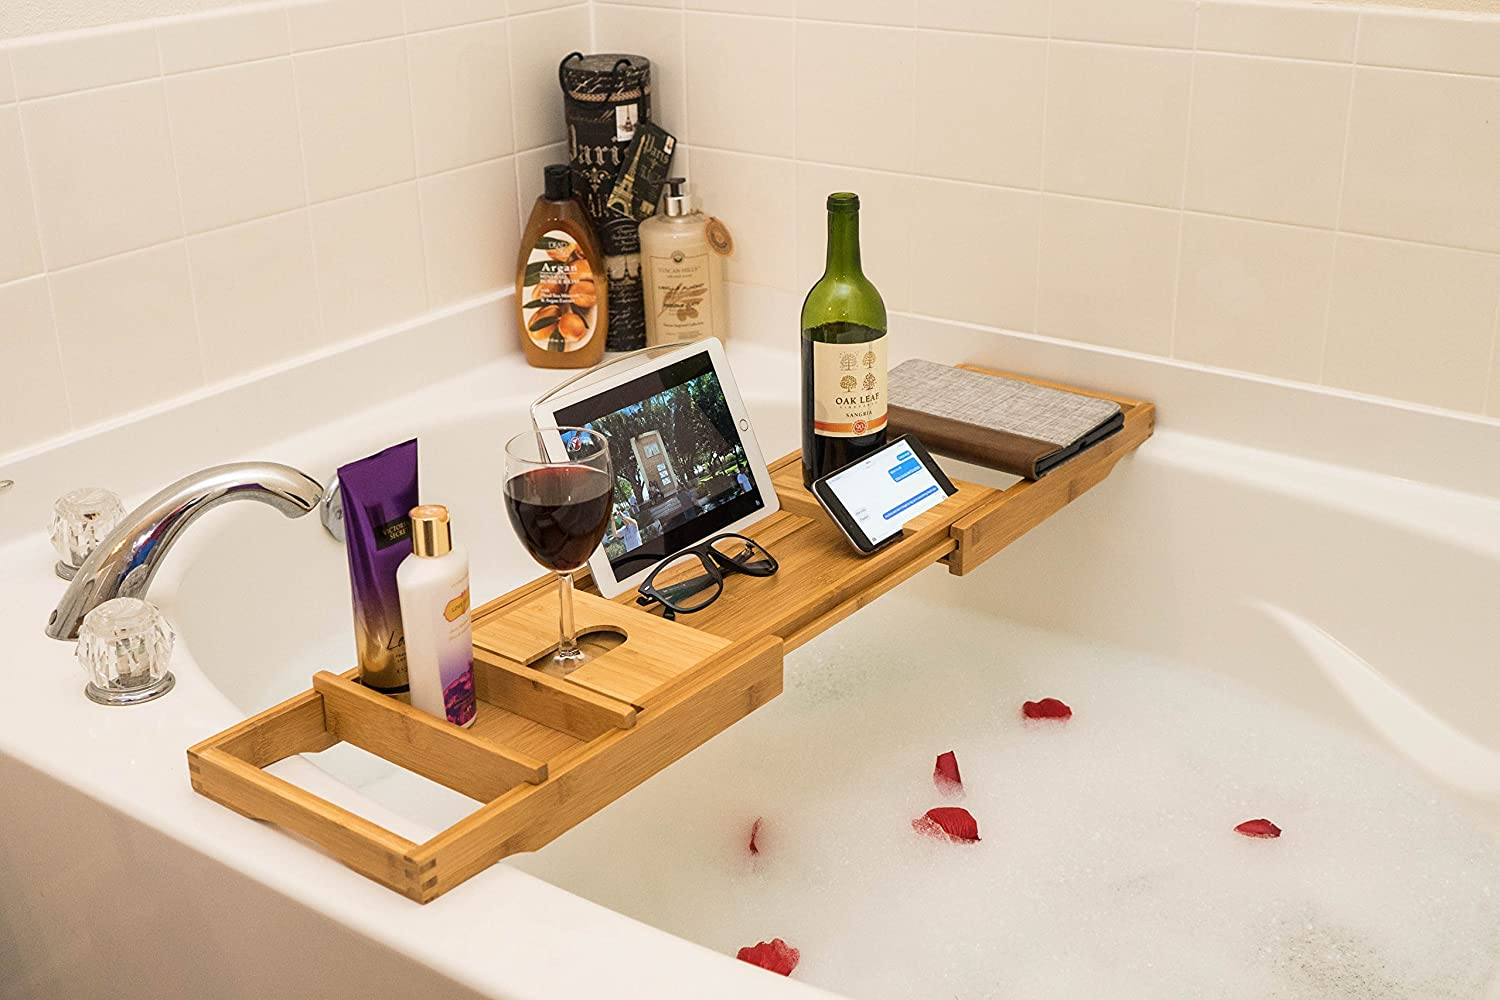 Bamboo Bathtub Tray (Expands up to 43 inches)